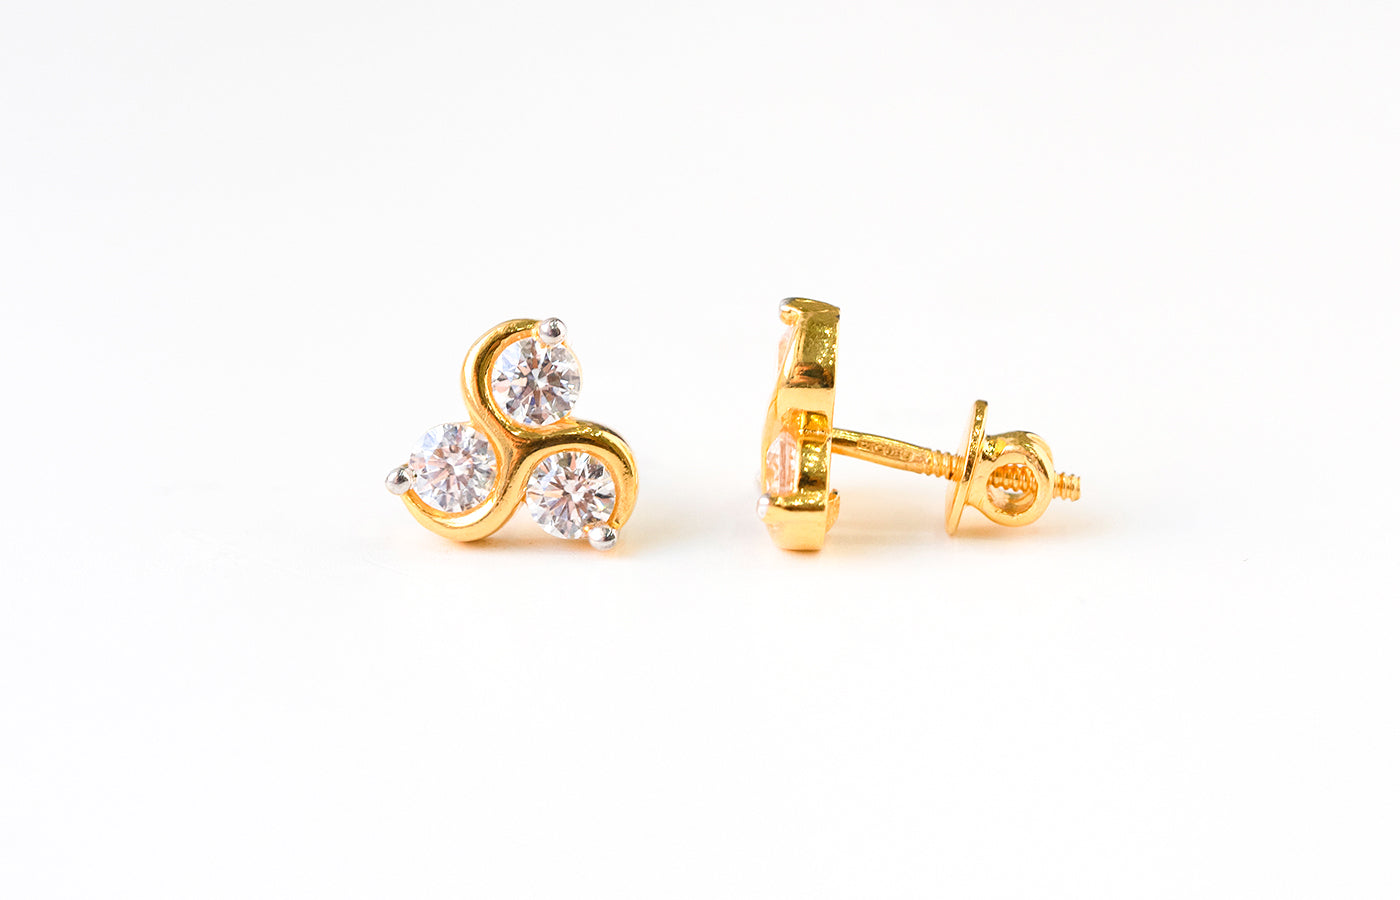 22ct Gold Stud Earrings set with Swarovski Zirconias (3.17g) ET10193